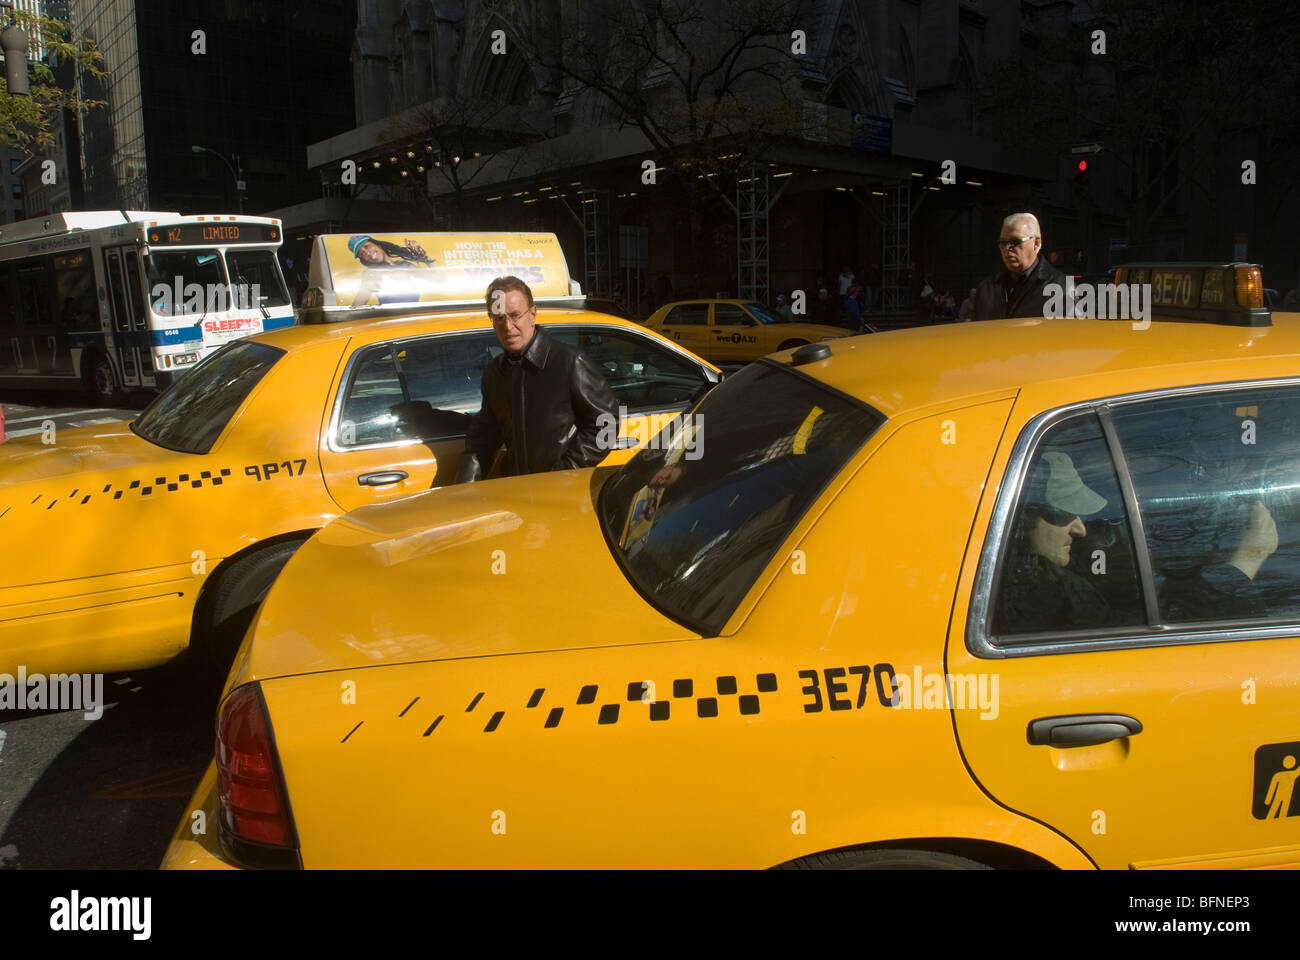 Pedestrians maneuver through gridlocked traffic on Fifth Avenue in New York on Saturday, November 7, 2009. (© - Stock Image